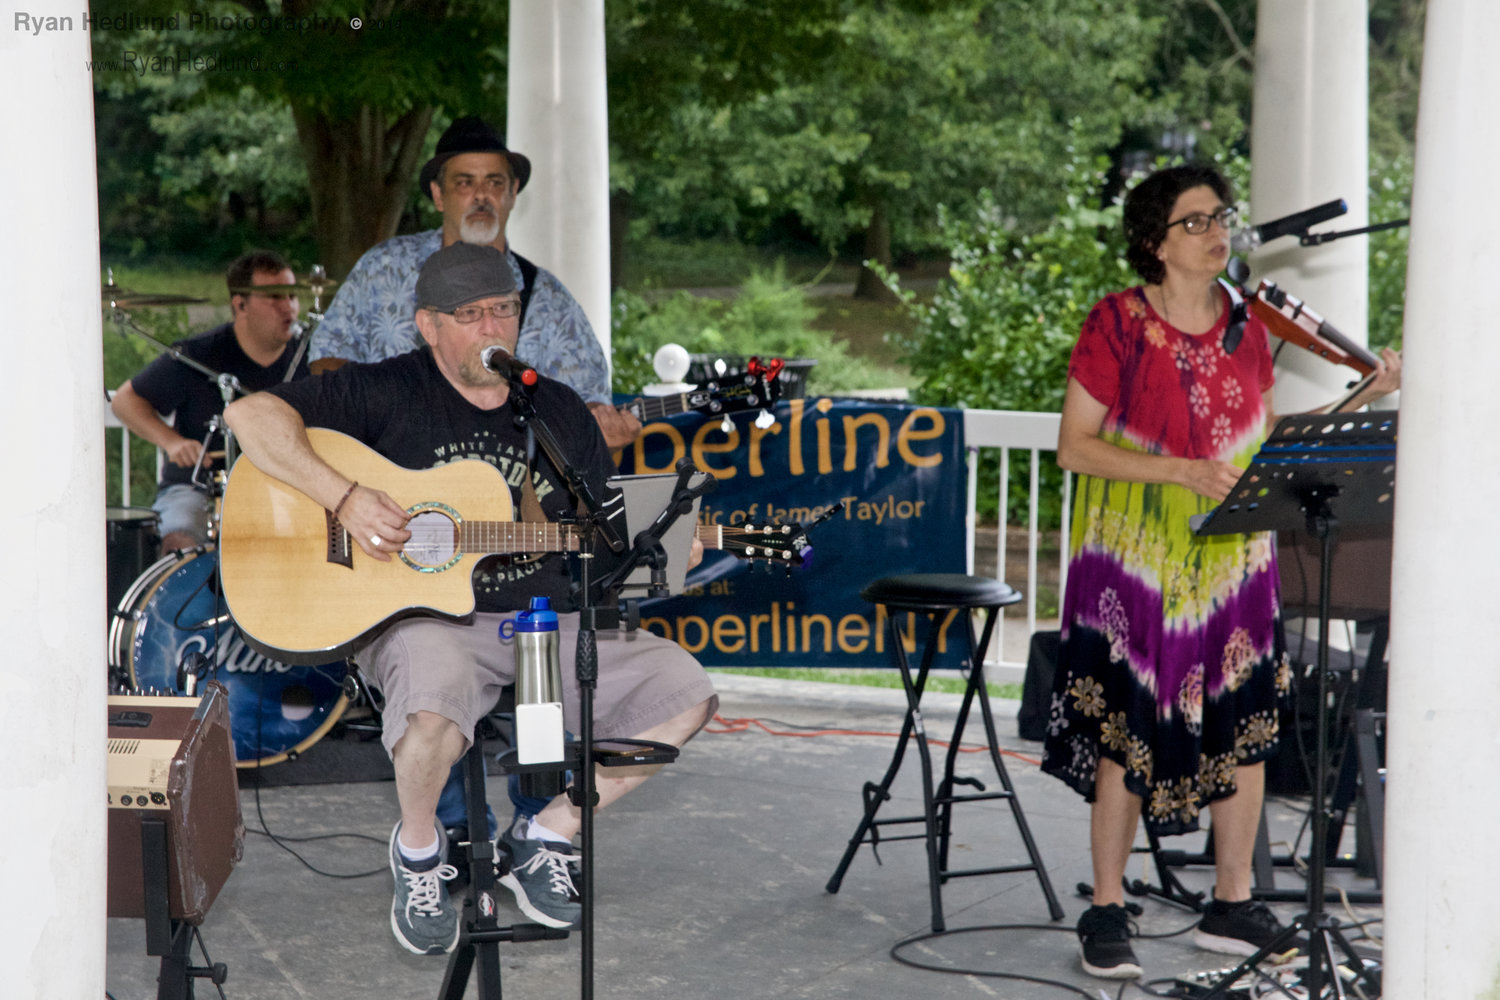 """Copperline,"" a James Taylor Tribute Band, performed under the gazebo at Hall's Pond Park in West Hempstead on Aug. 18."